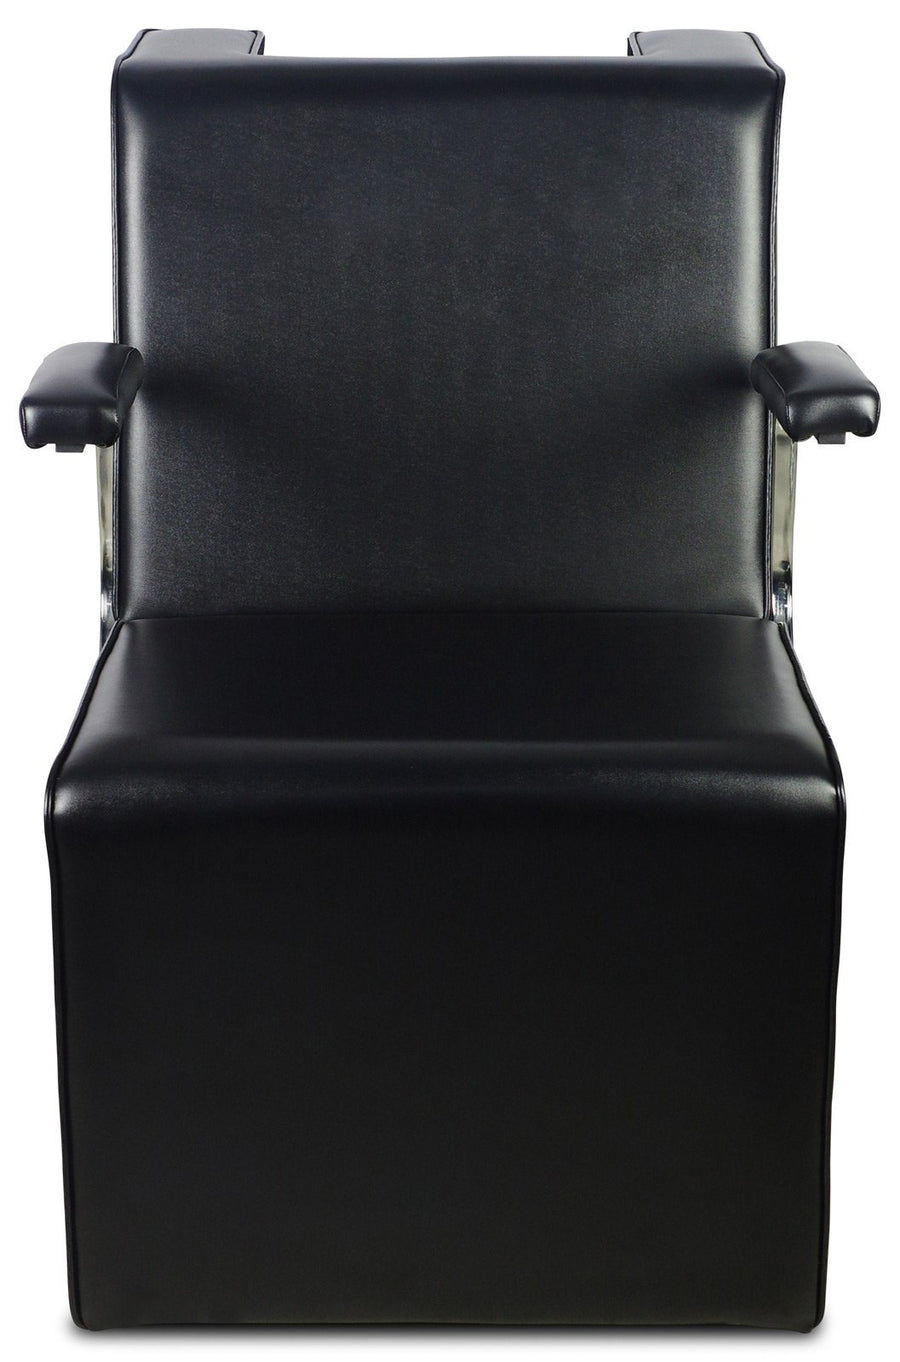 """Bogart"" Beauty Salon Dryer Chair Dryer Chairs Icarus"